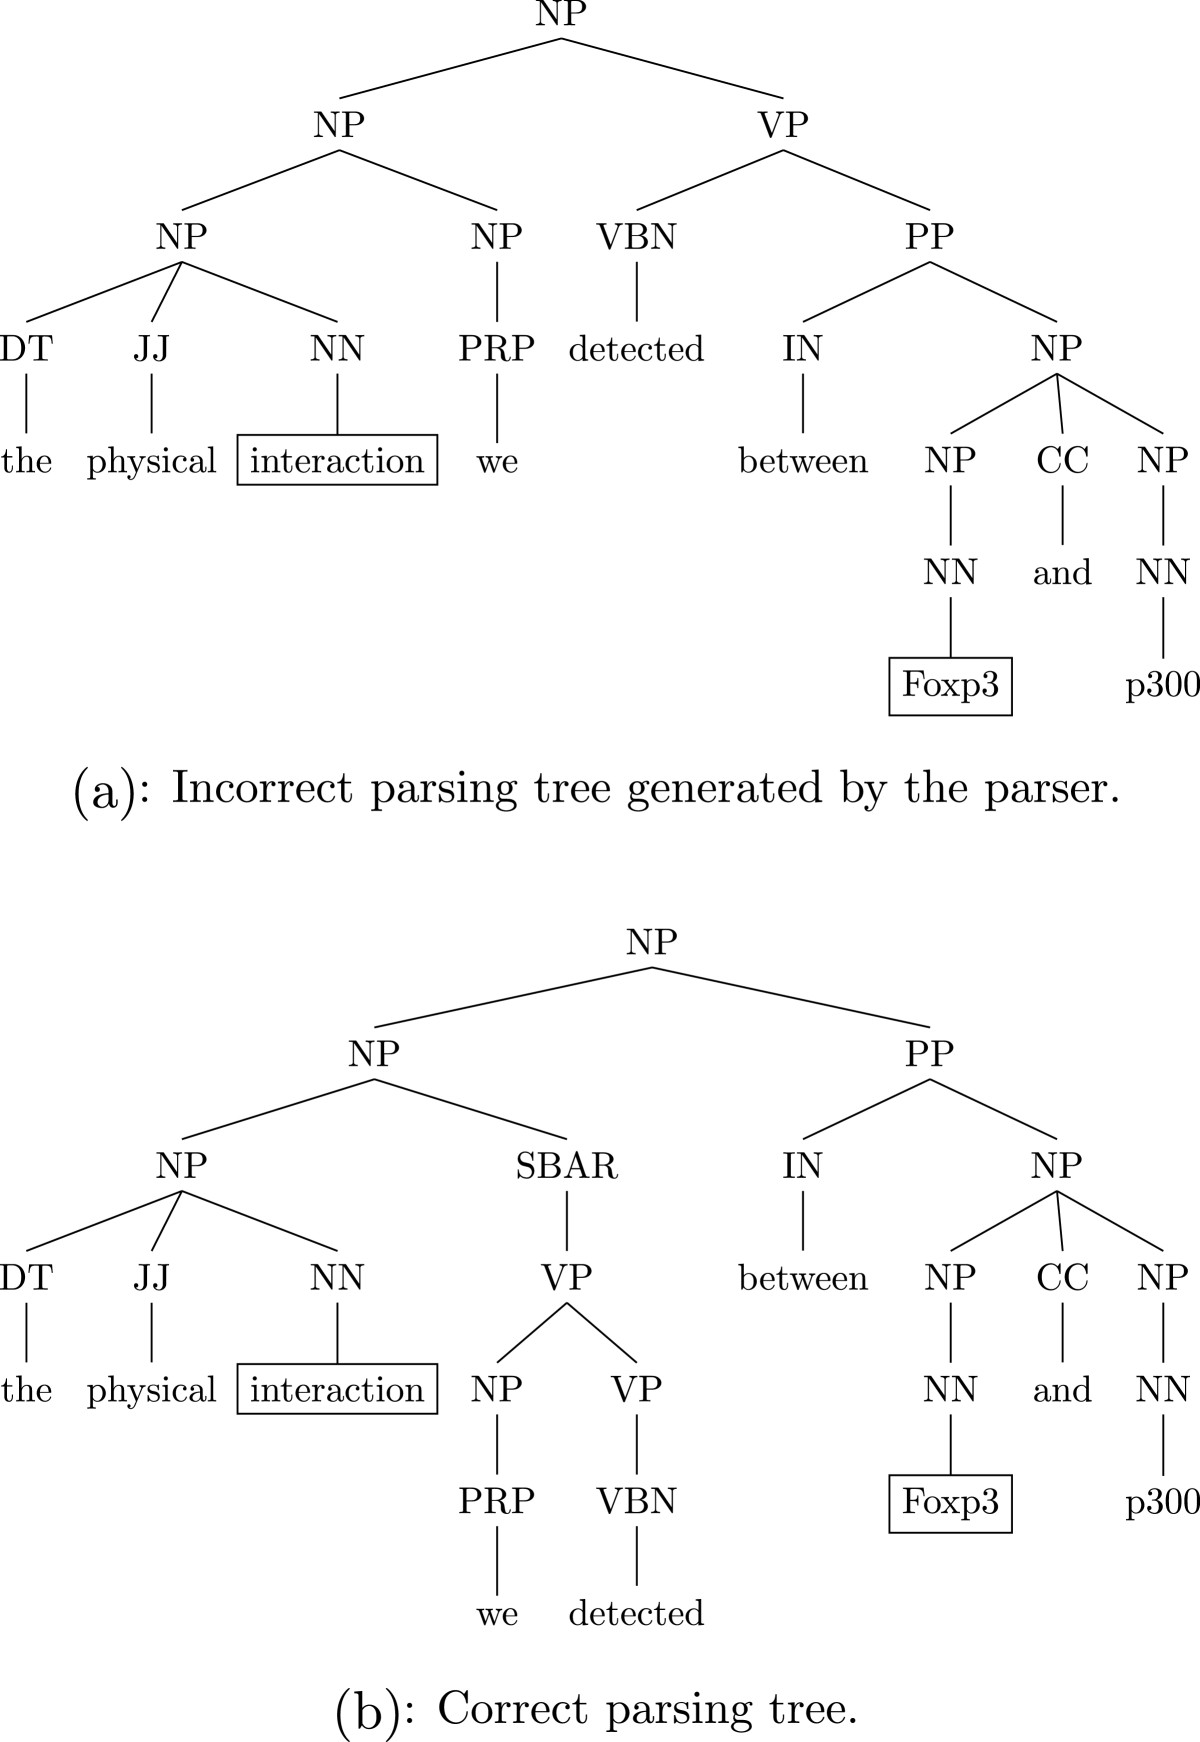 https://static-content.springer.com/image/art%3A10.1186%2F1471-2105-15-285/MediaObjects/12859_2013_Article_6688_Fig4_HTML.jpg